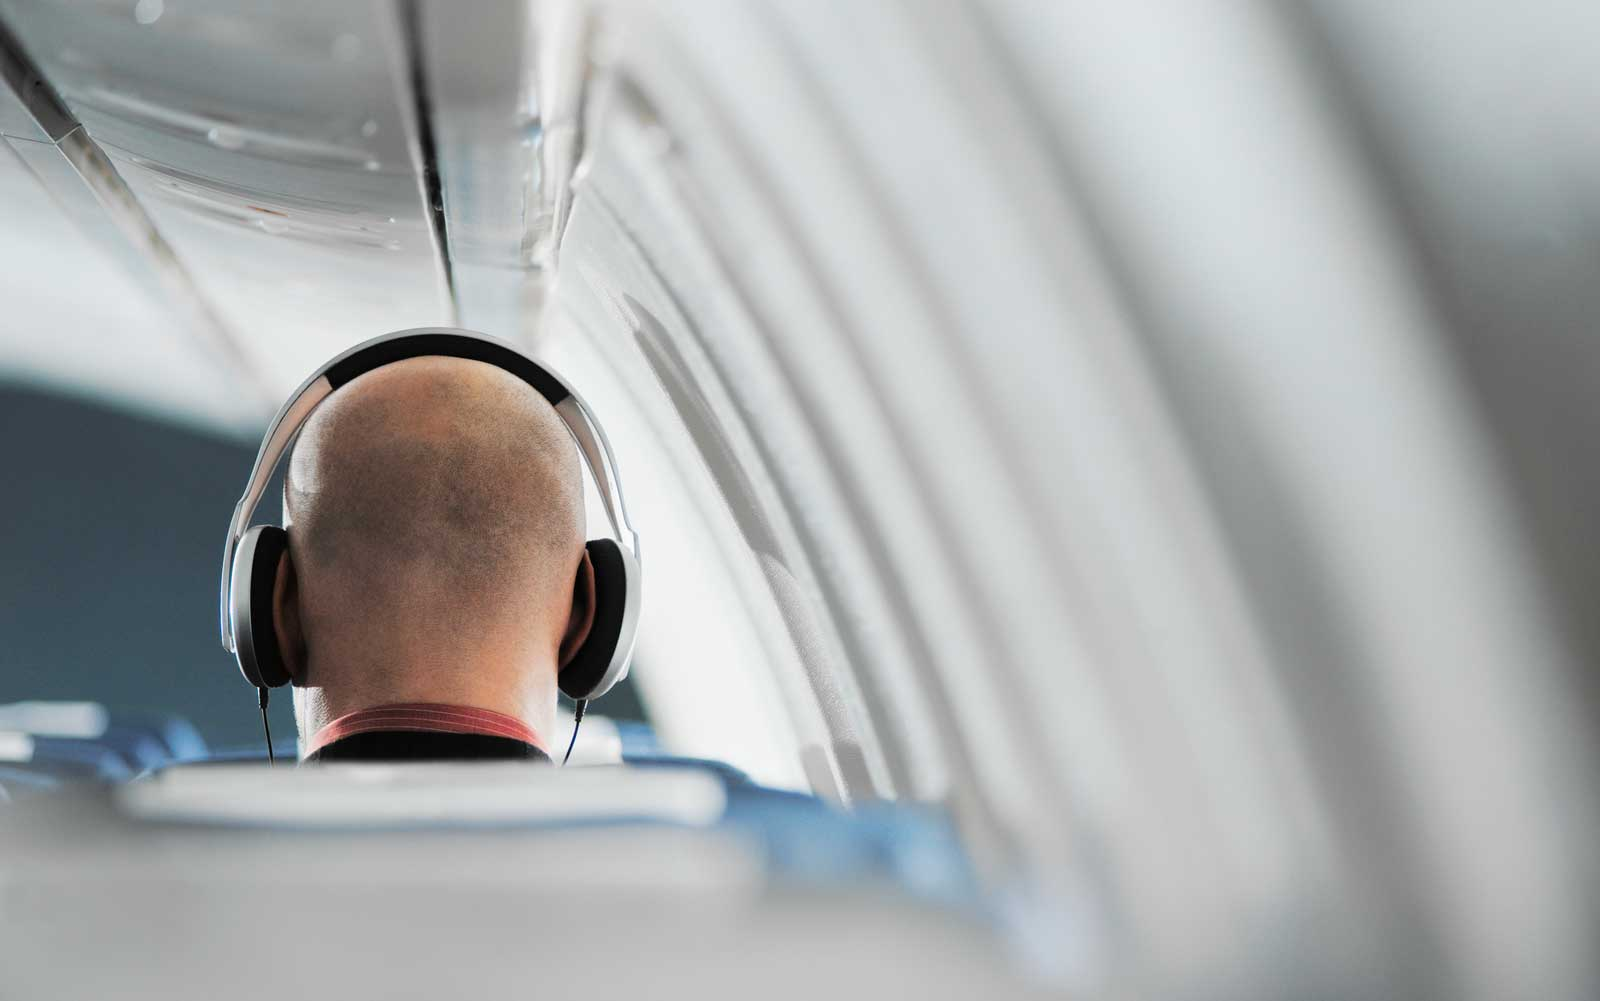 Airline passenger wearing headphones